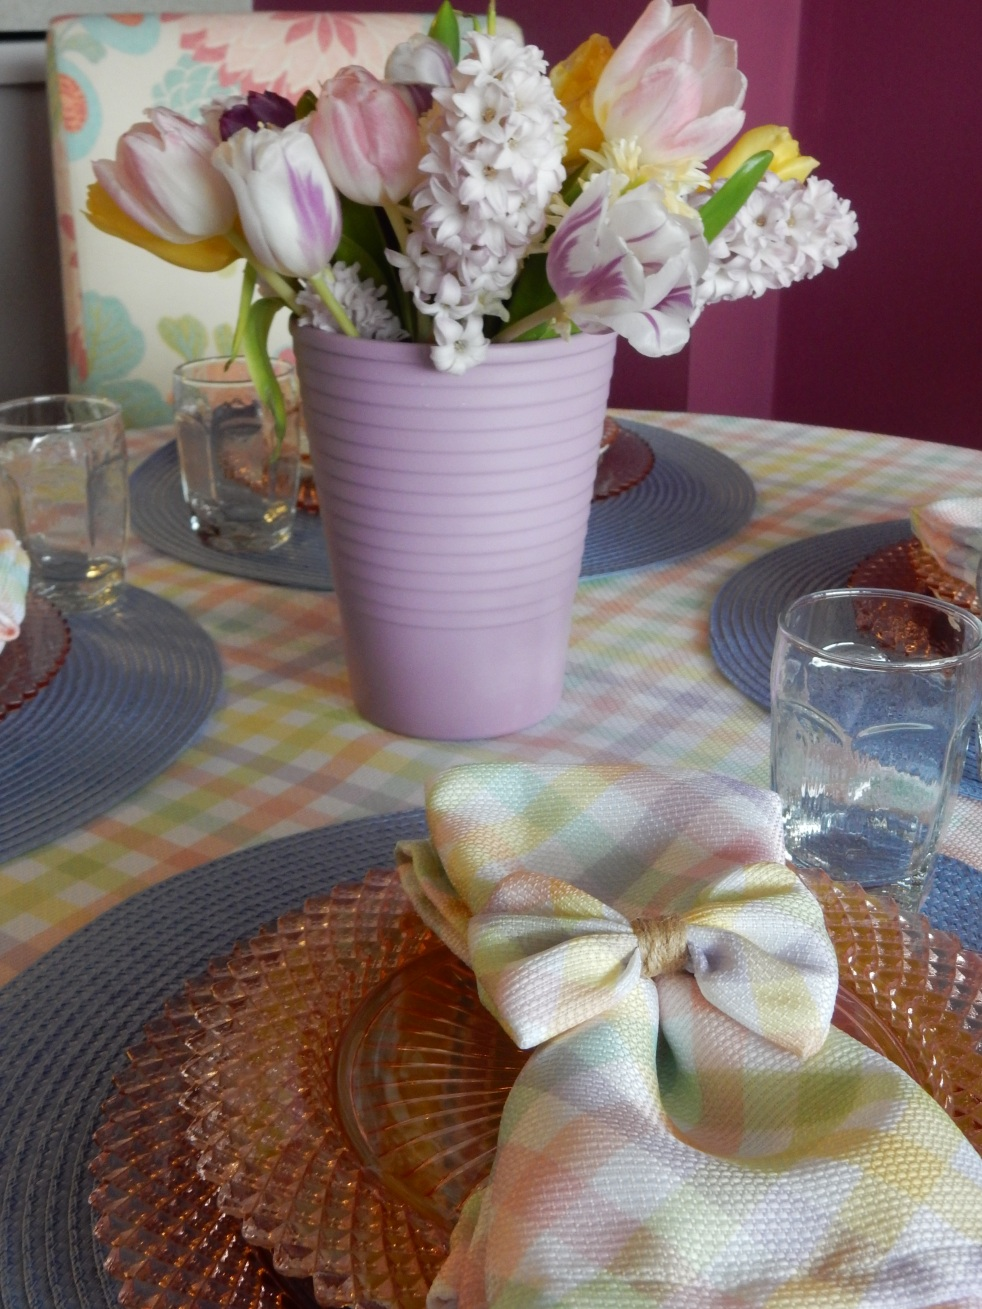 Sarah In Style, SarahInStyle.com, Sarah Meyer, Dining Decor, Hoppy Easter, Easter Table, Easter Decorating, Easter Decorations, Easter tablescapes, Spring tablescapes, spring tablescape, decorating for Easter, incorporating family traditions, where did the easter bunny originate, where is the easter bunny from, why do we hide easter eggs, cute table decor, miss america depressrion glass, pink miss america glass, plaid tablecloth, plaid napkins, bow napkin rings, table decorating ideas, wedding shower tables, baby shower tables, springtime decor. Easter 2021, Bed Bath and Beyond tableware